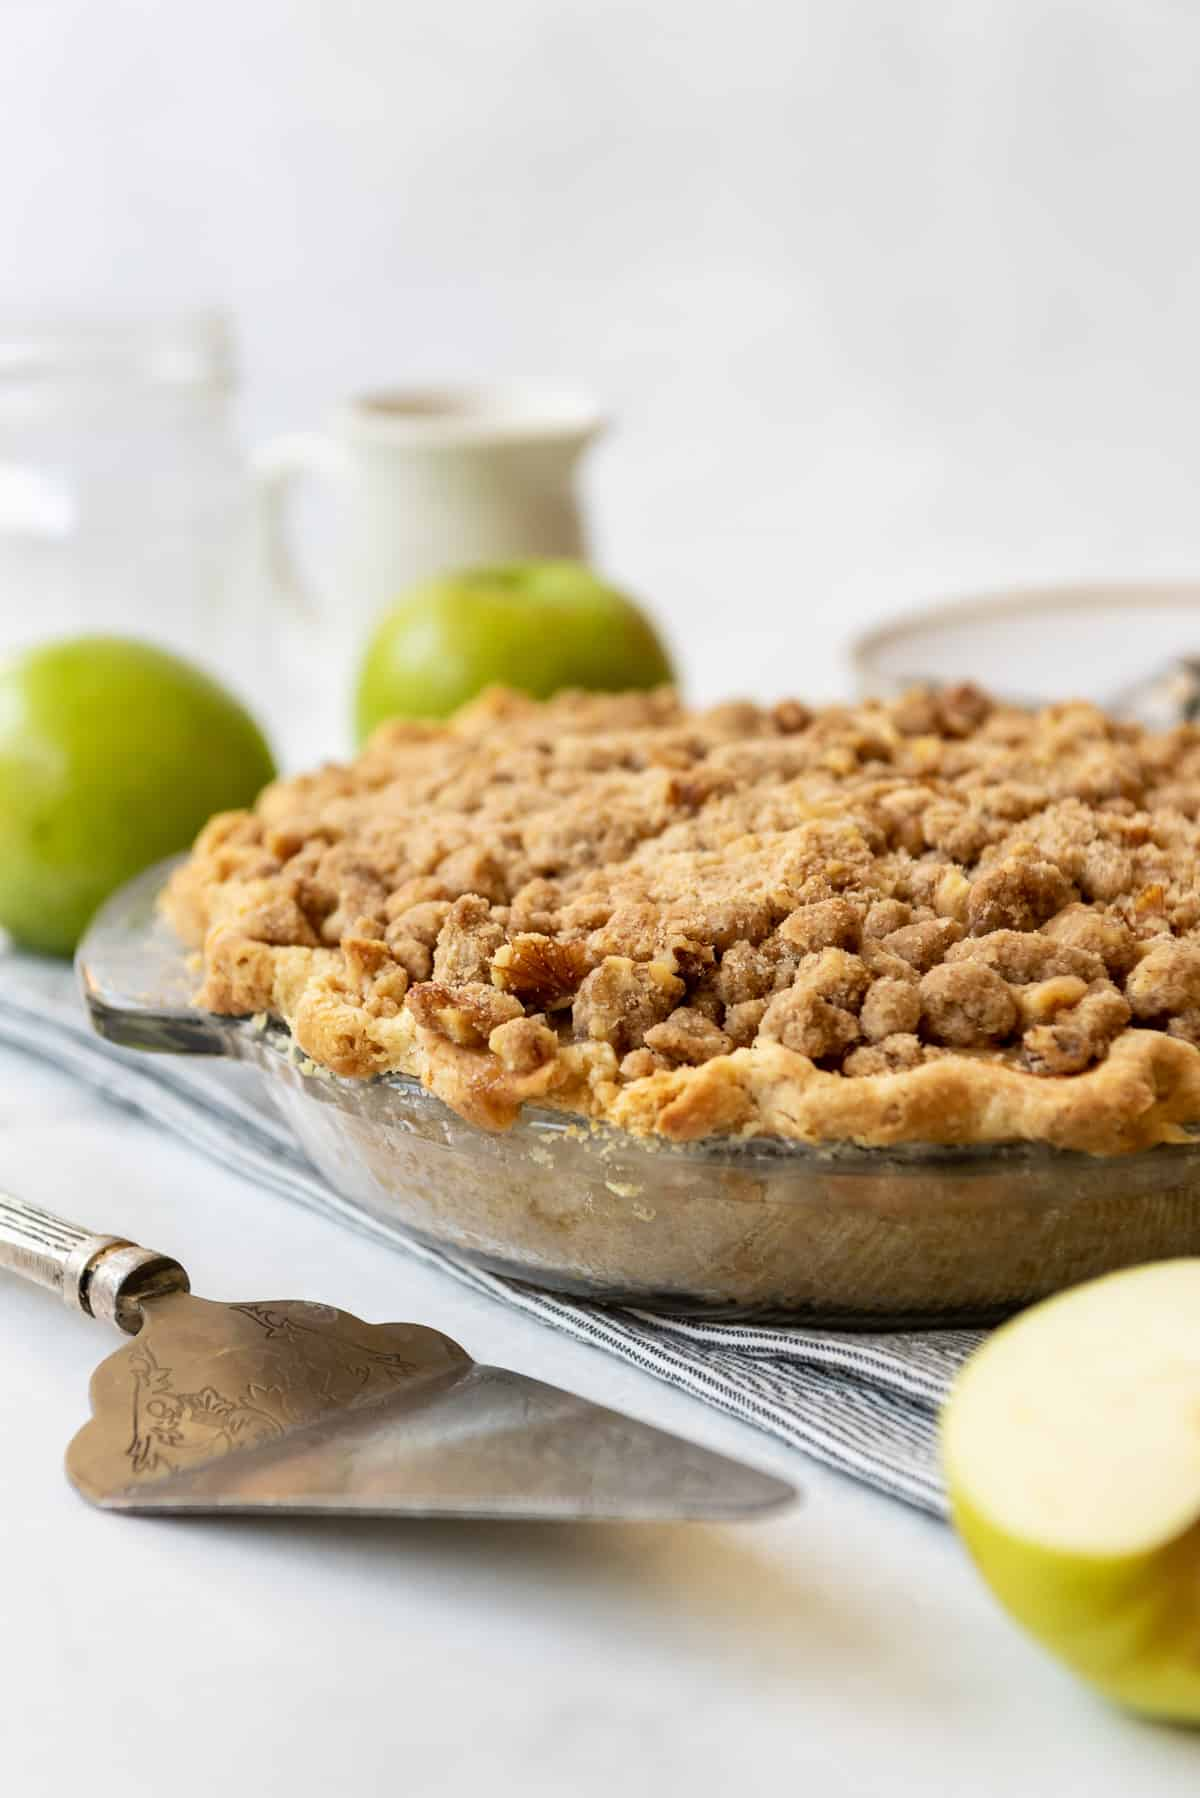 A baked sour cream apple pie in a glass pie plate.